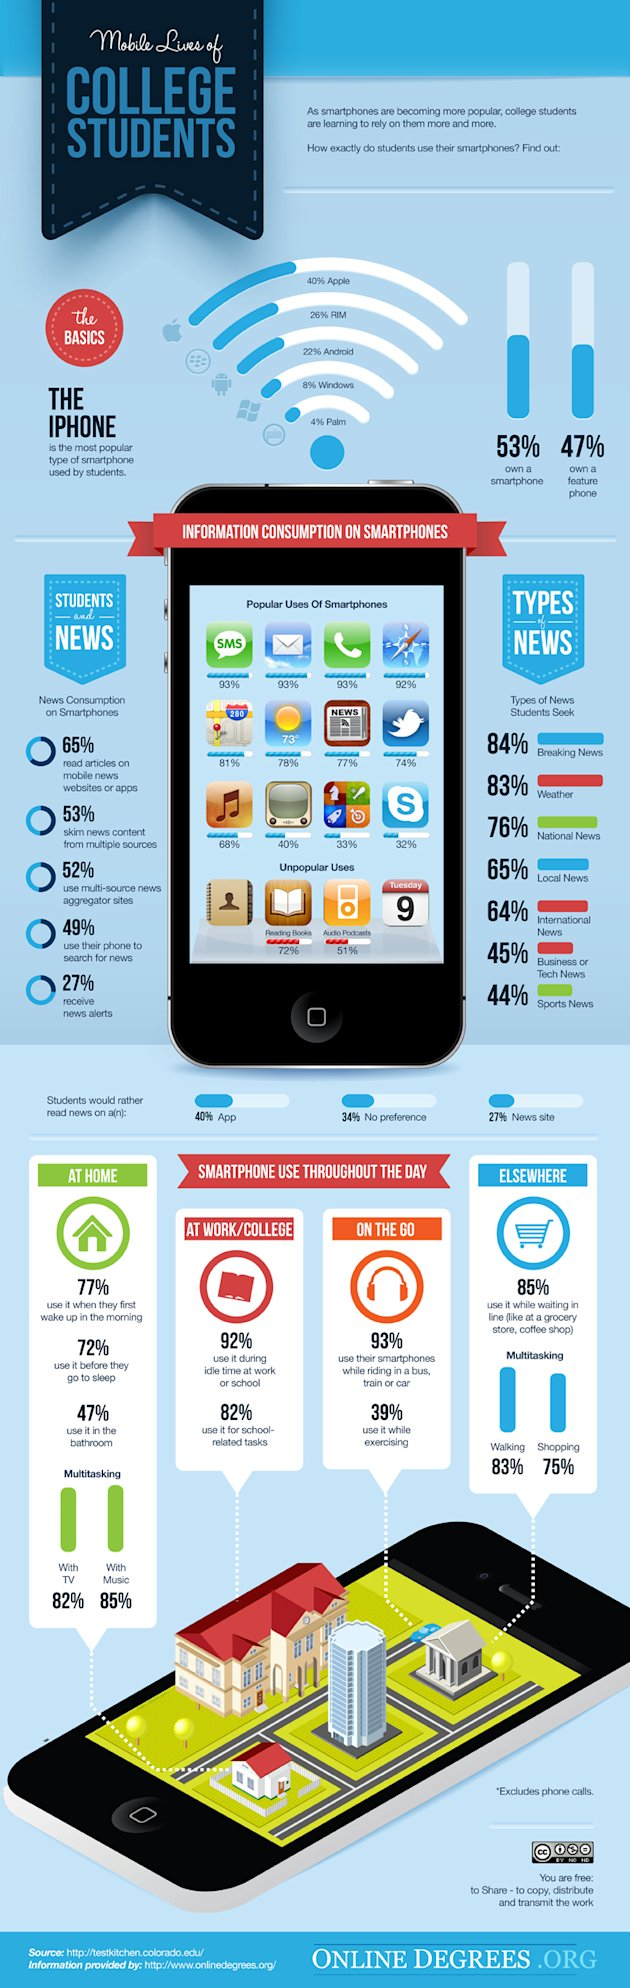 Smartphone Use By College Students (Infographic) image Mobile Lives Of College Students